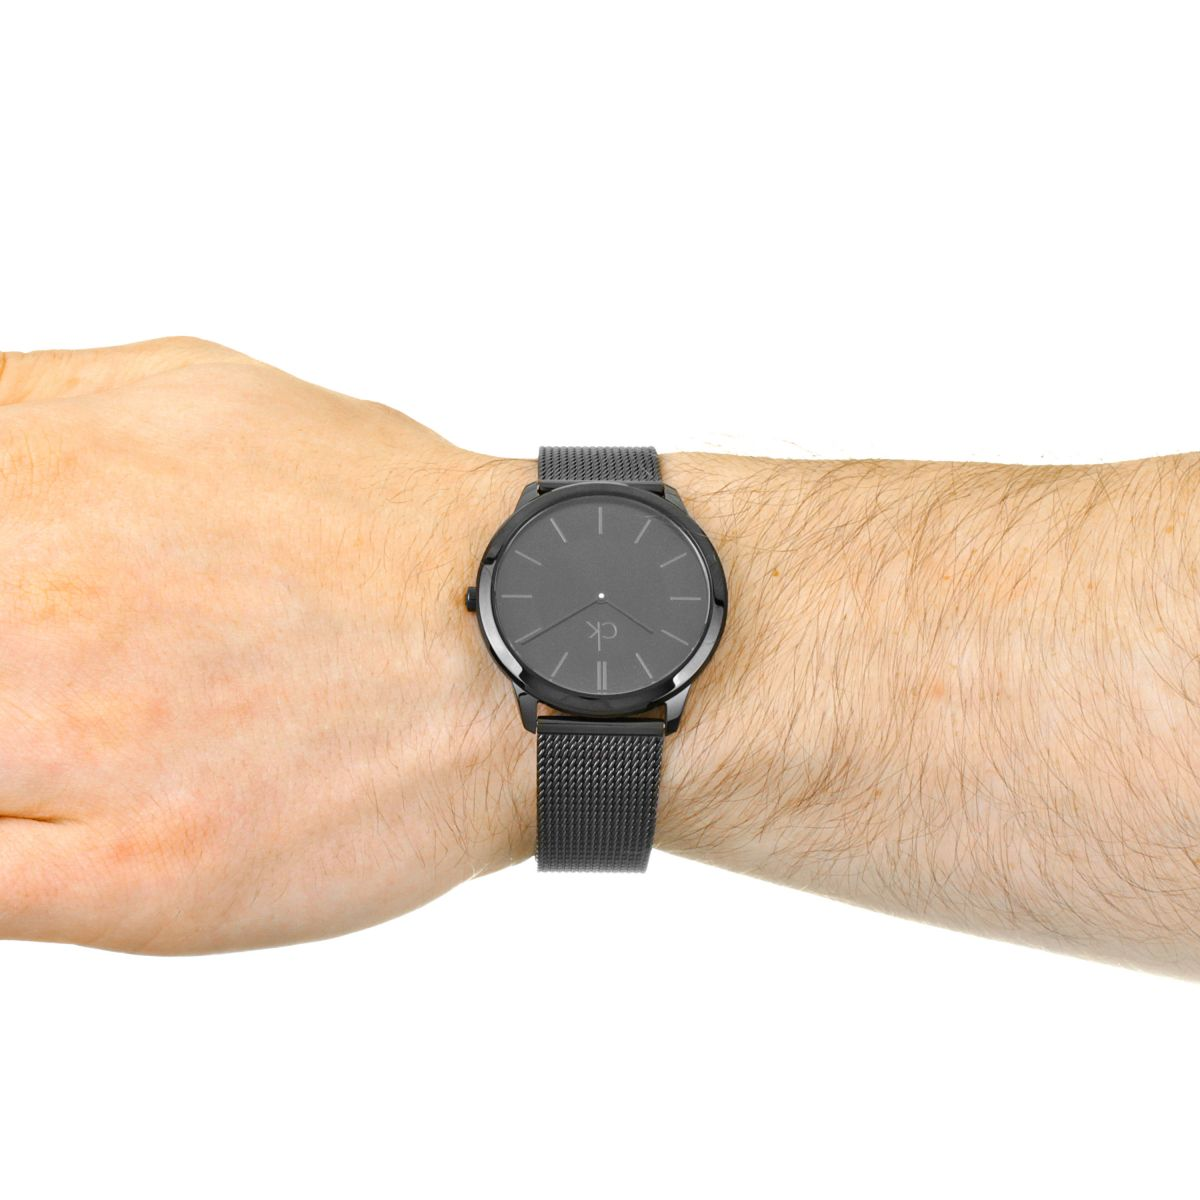 watches swiss designed minimalist minimal made web astoncain british